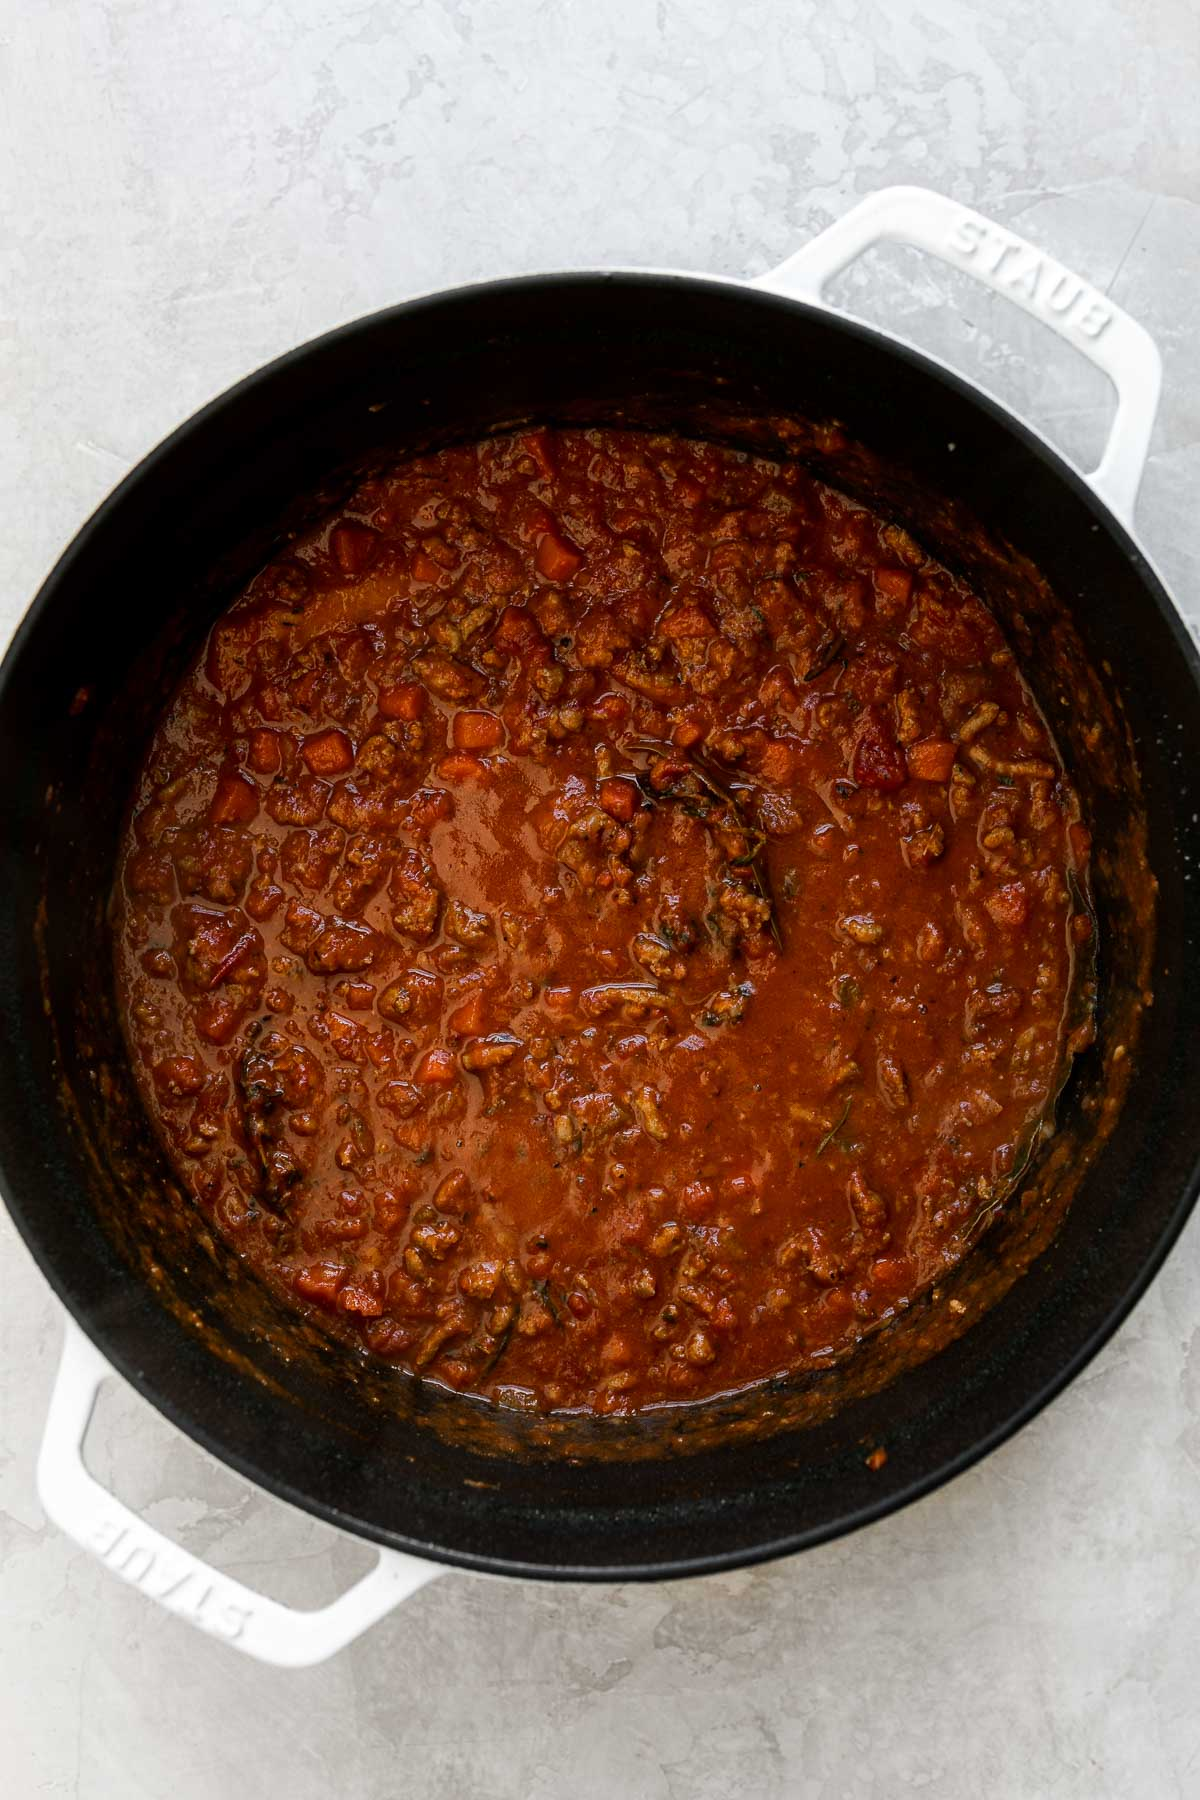 Weeknight bolognese sauce made with turkey in a large pot sits atop a creamy white surface.